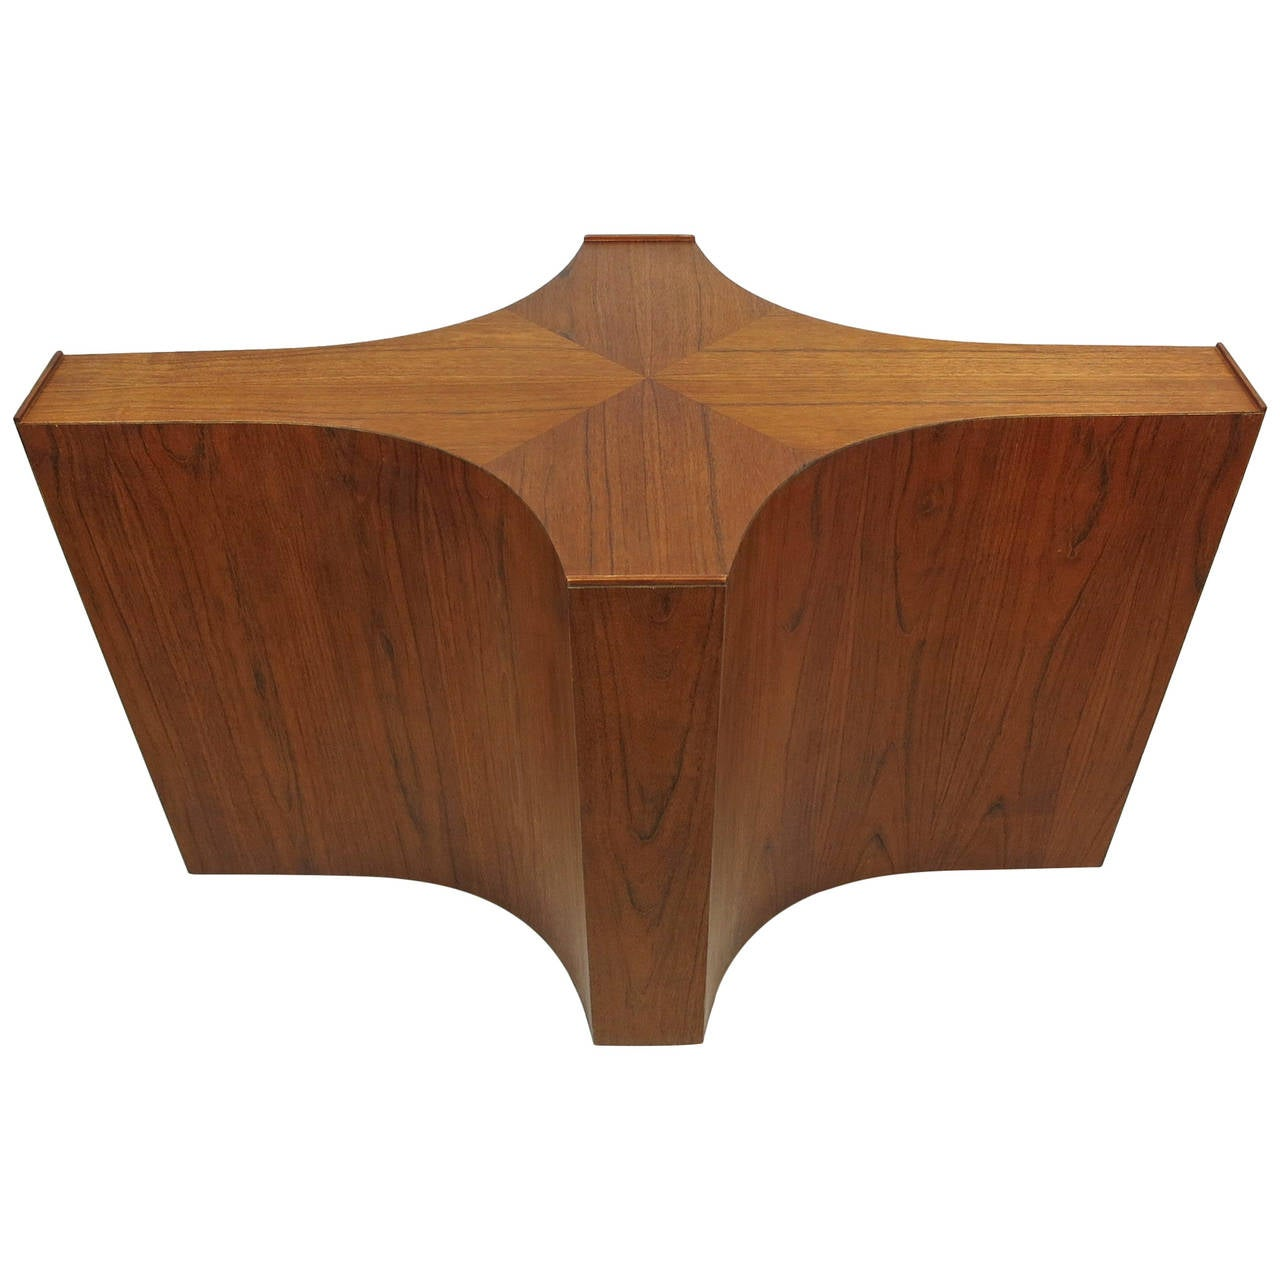 bases for dining room tables | Large-Scale Walnut Cruciform Dining Table Base at 1stdibs